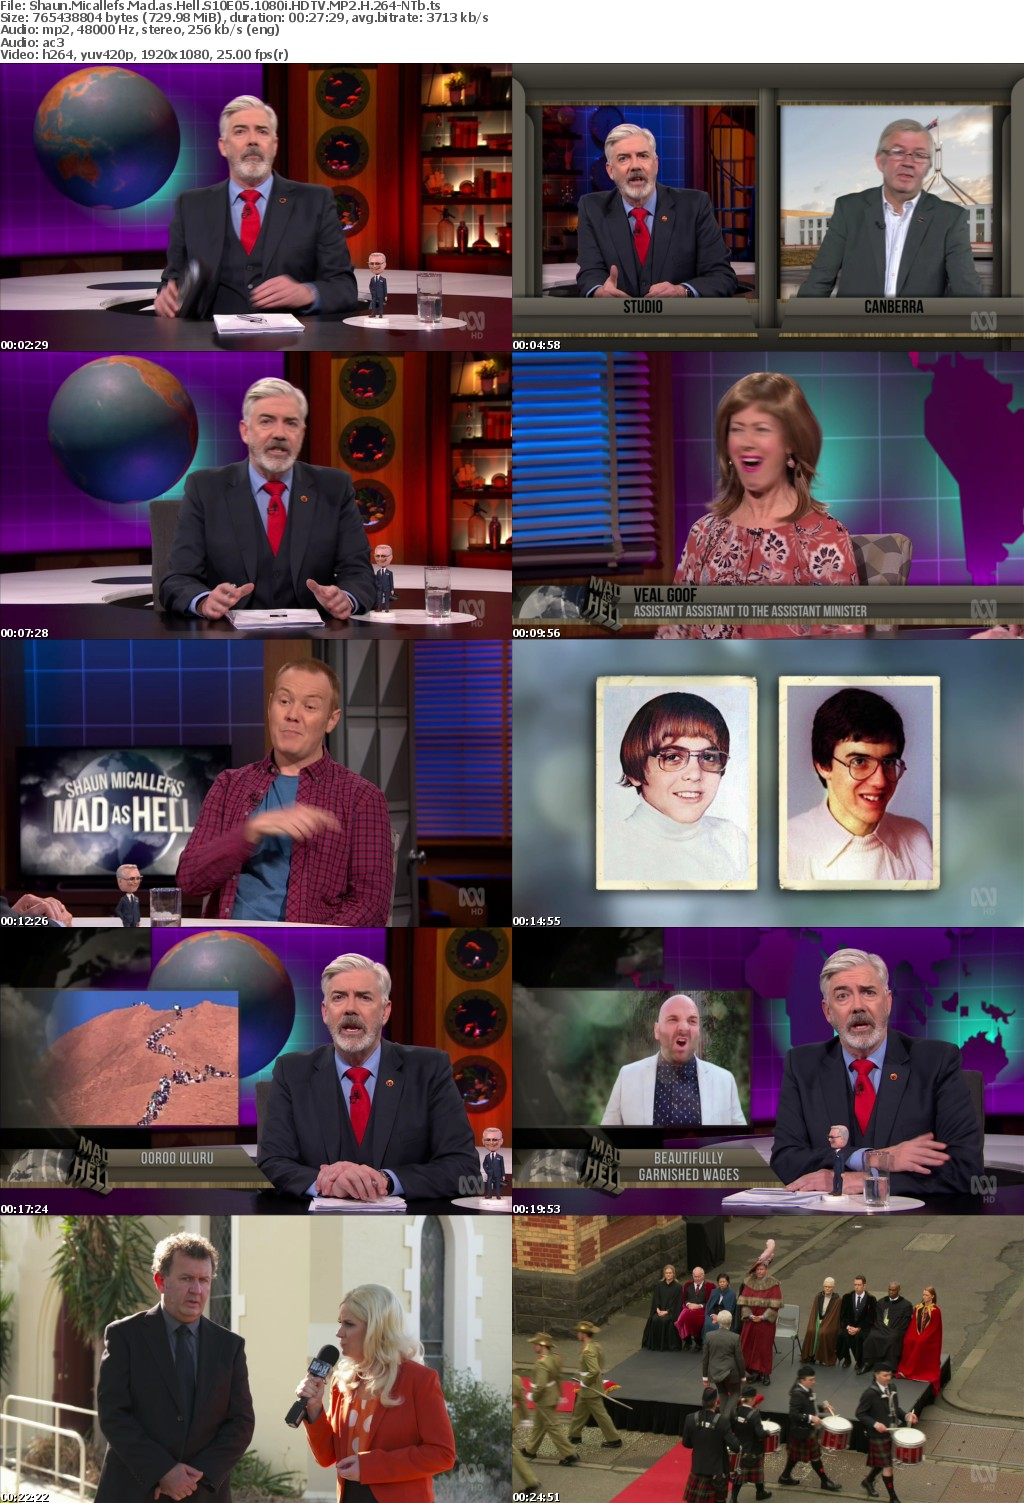 Shaun Micallefs Mad as Hell S10E05 1080i HDTV MP2 H 264-NTb